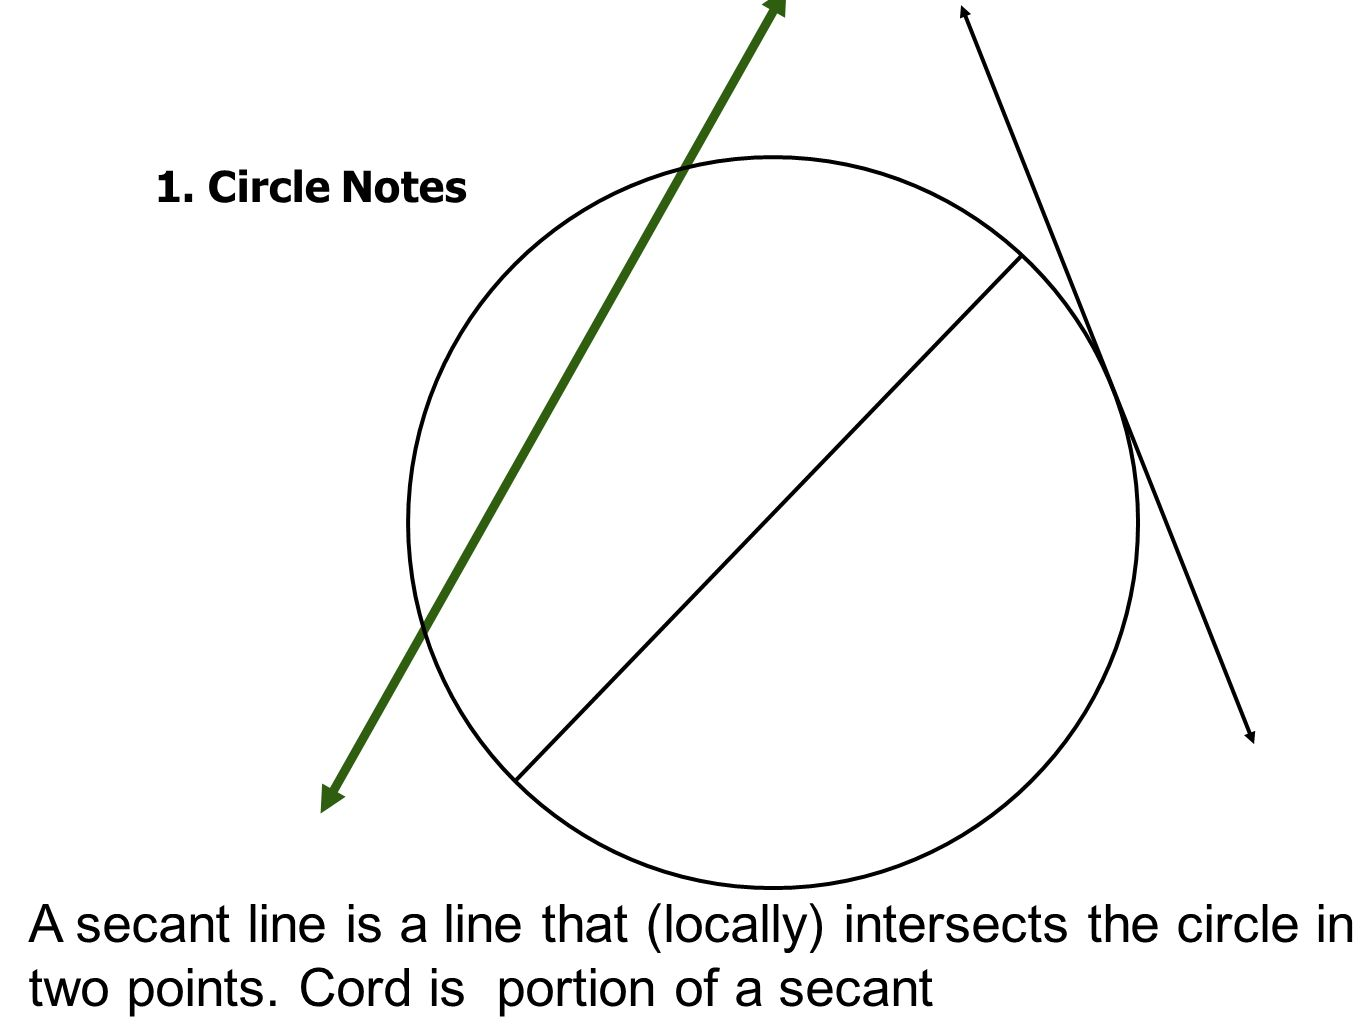 1. Circle Notes Secant. Cord is portion of a secant.